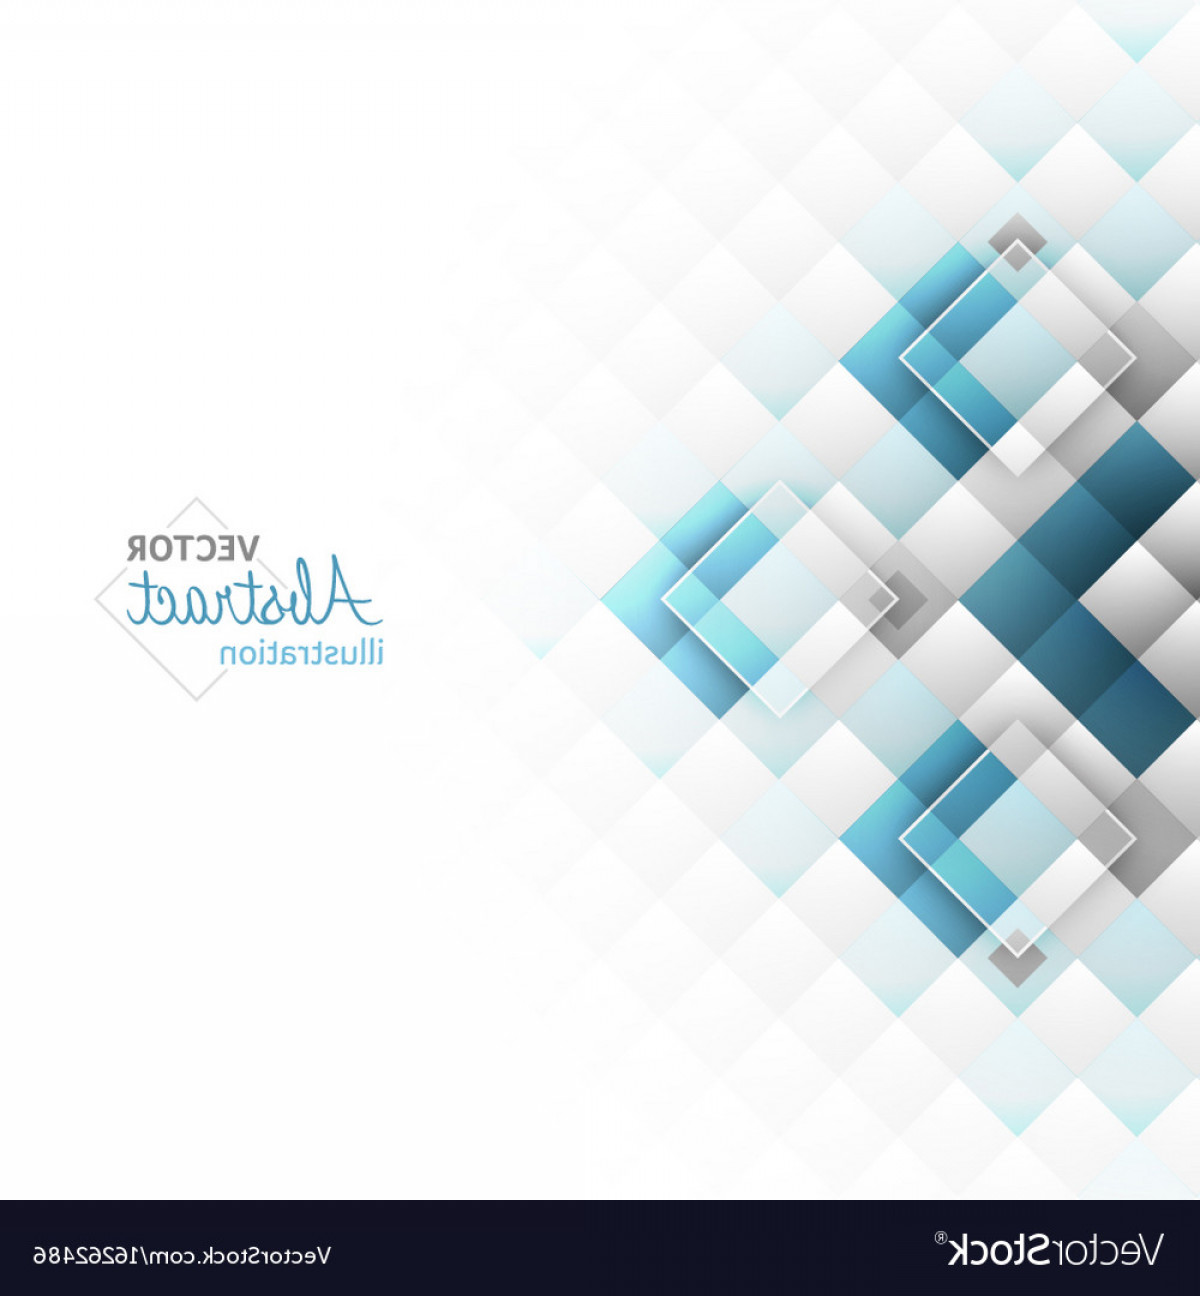 Free Vector Backgrounds Illustrator Free Download: Abstract Background Square Shapes Vector